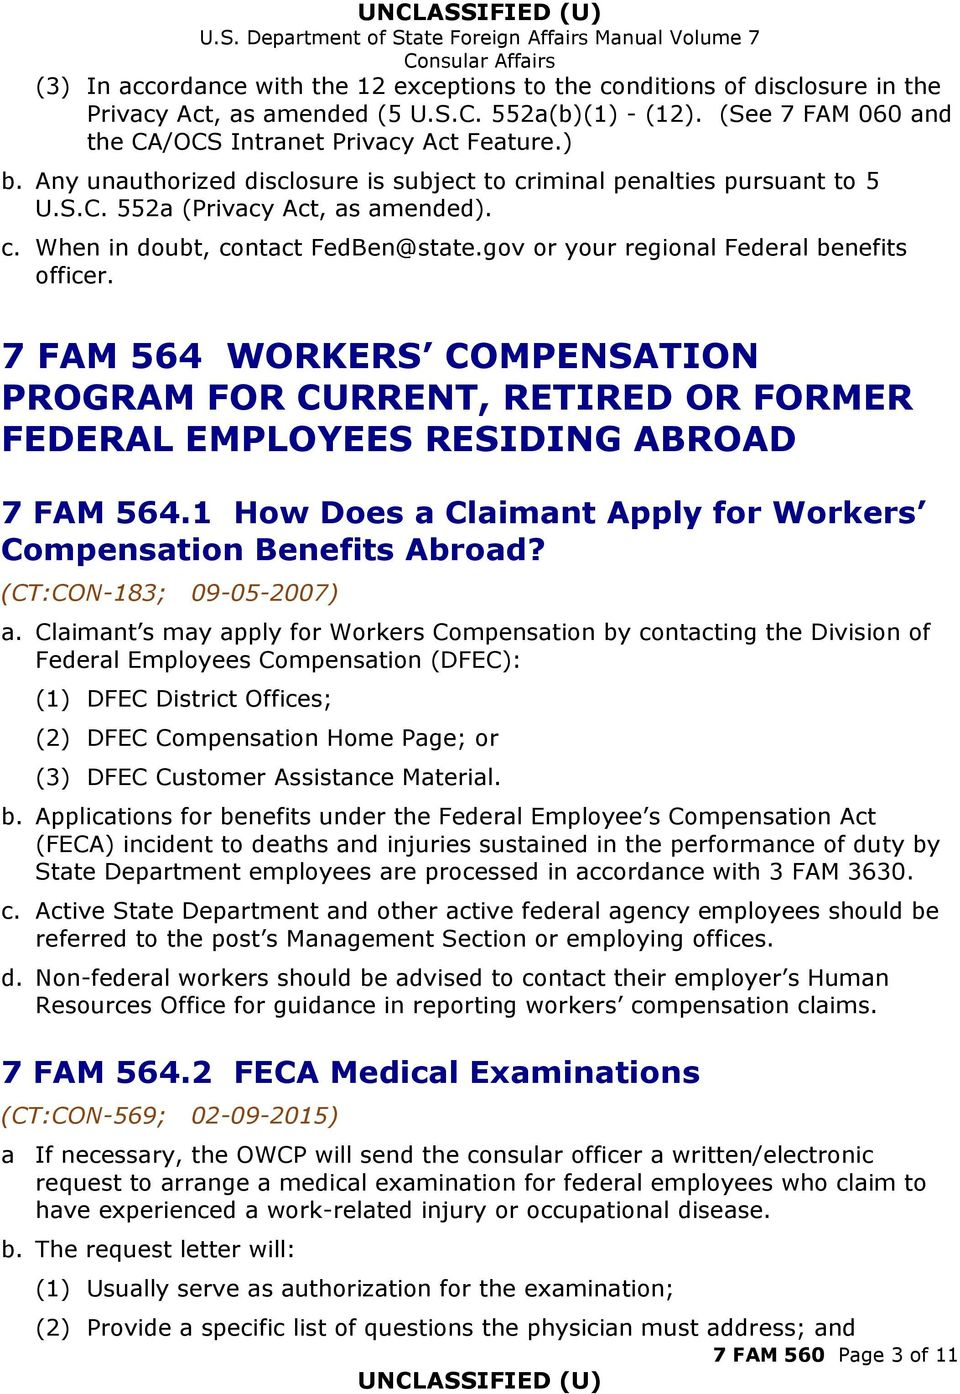 7 FAM 564 WORKERS COMPENSATION PROGRAM FOR CURRENT, RETIRED OR FORMER FEDERAL EMPLOYEES RESIDING ABROAD 7 FAM 564.1 How Does a